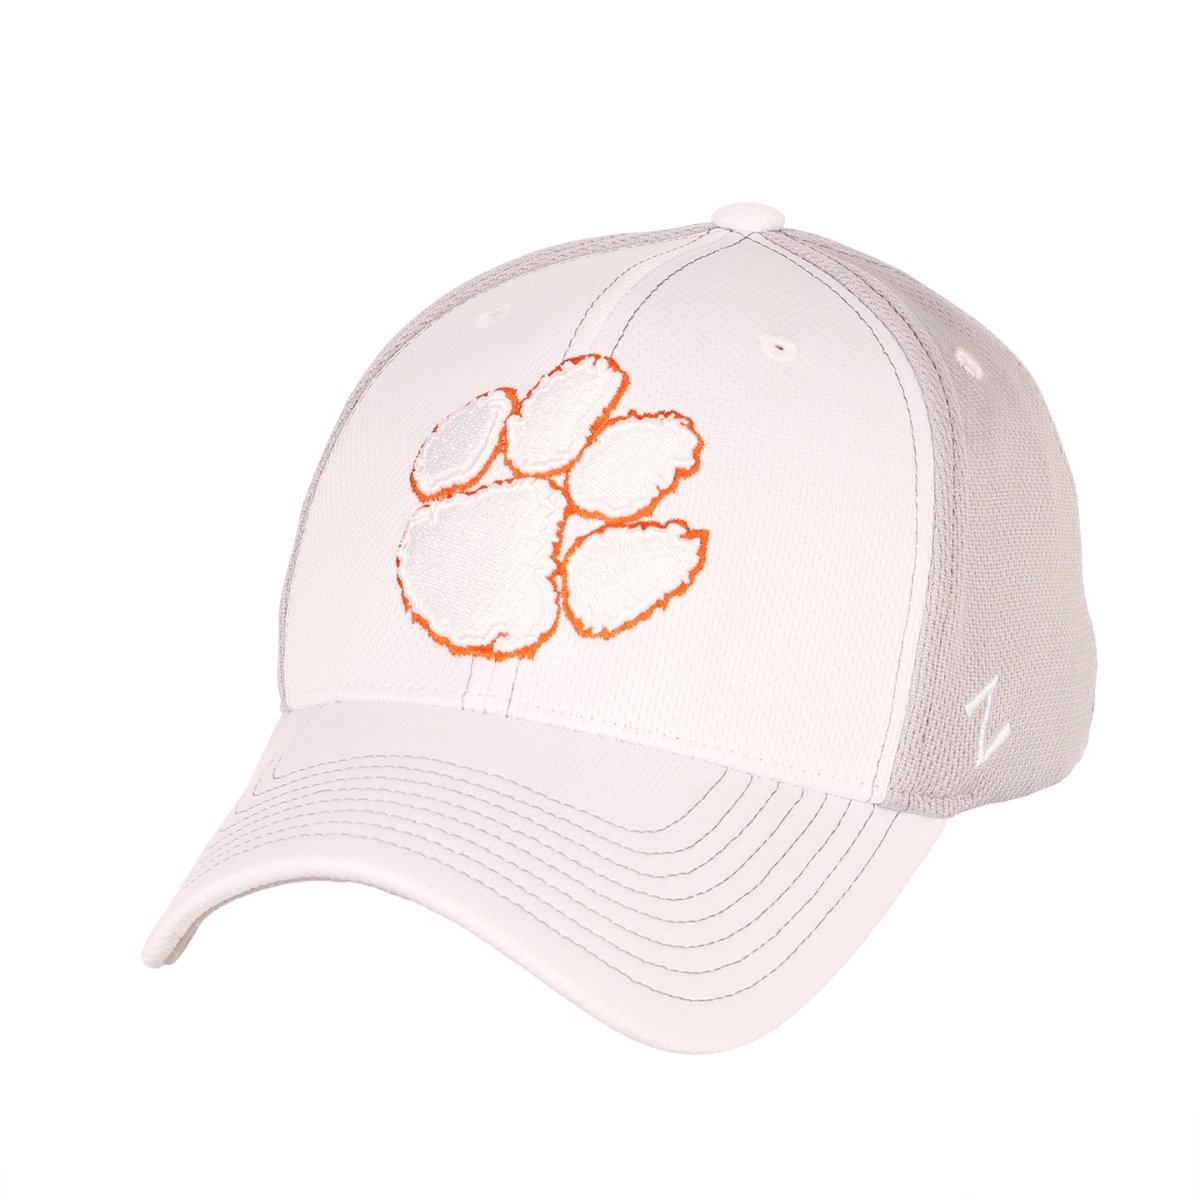 Clemson Tigers Yeti White Baseball Hat With White Paw and Orange Outline - Mr. Knickerbocker